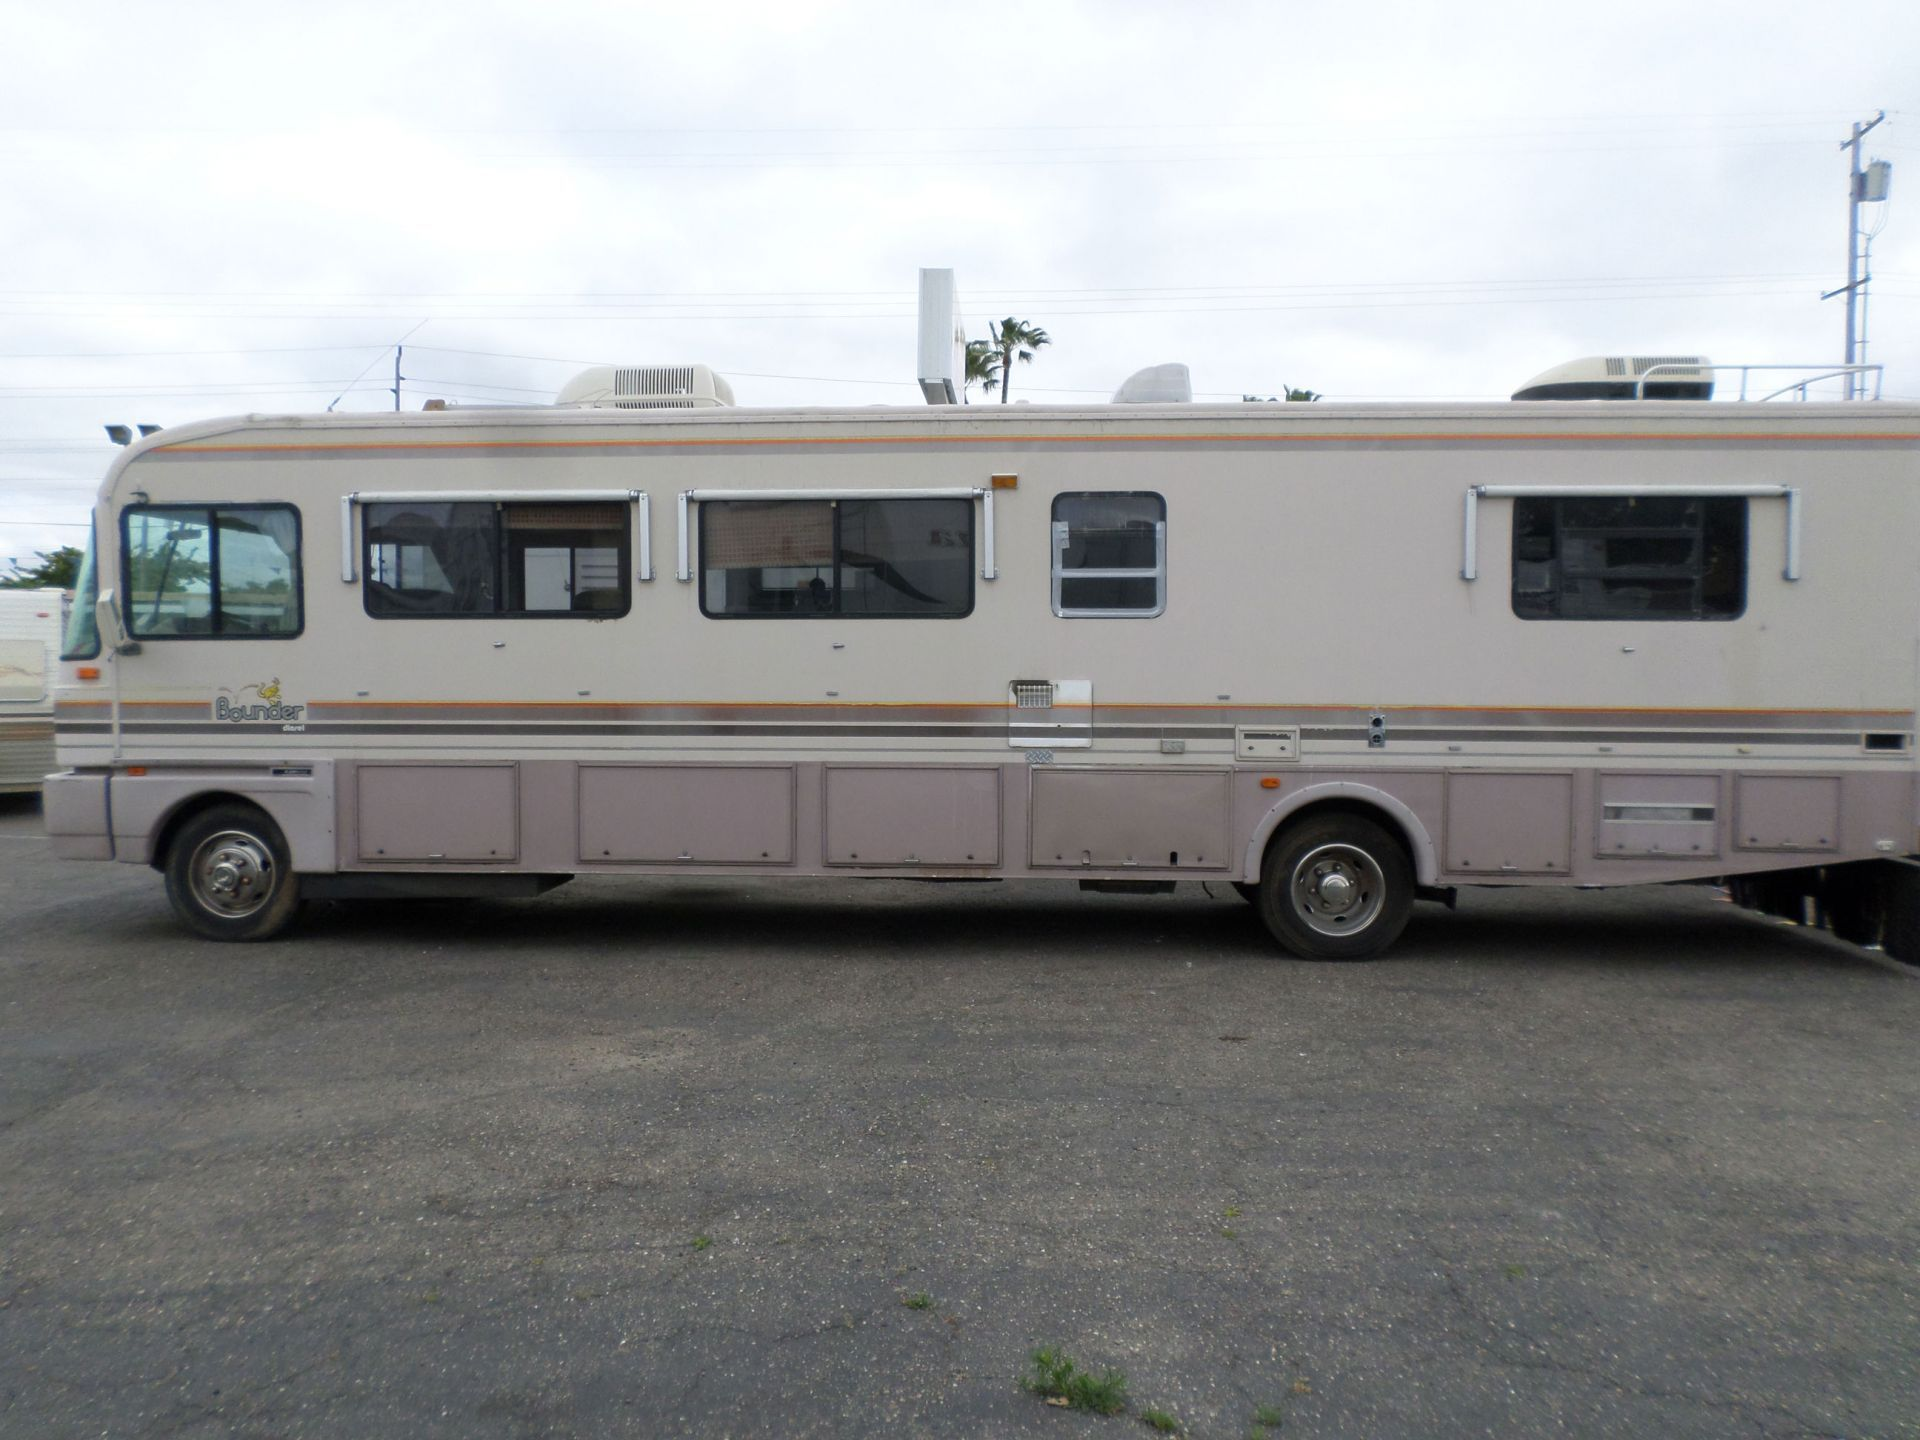 1992 Fleetwood Bounder Rv For Sale Fleetwood Bounder Used Rv